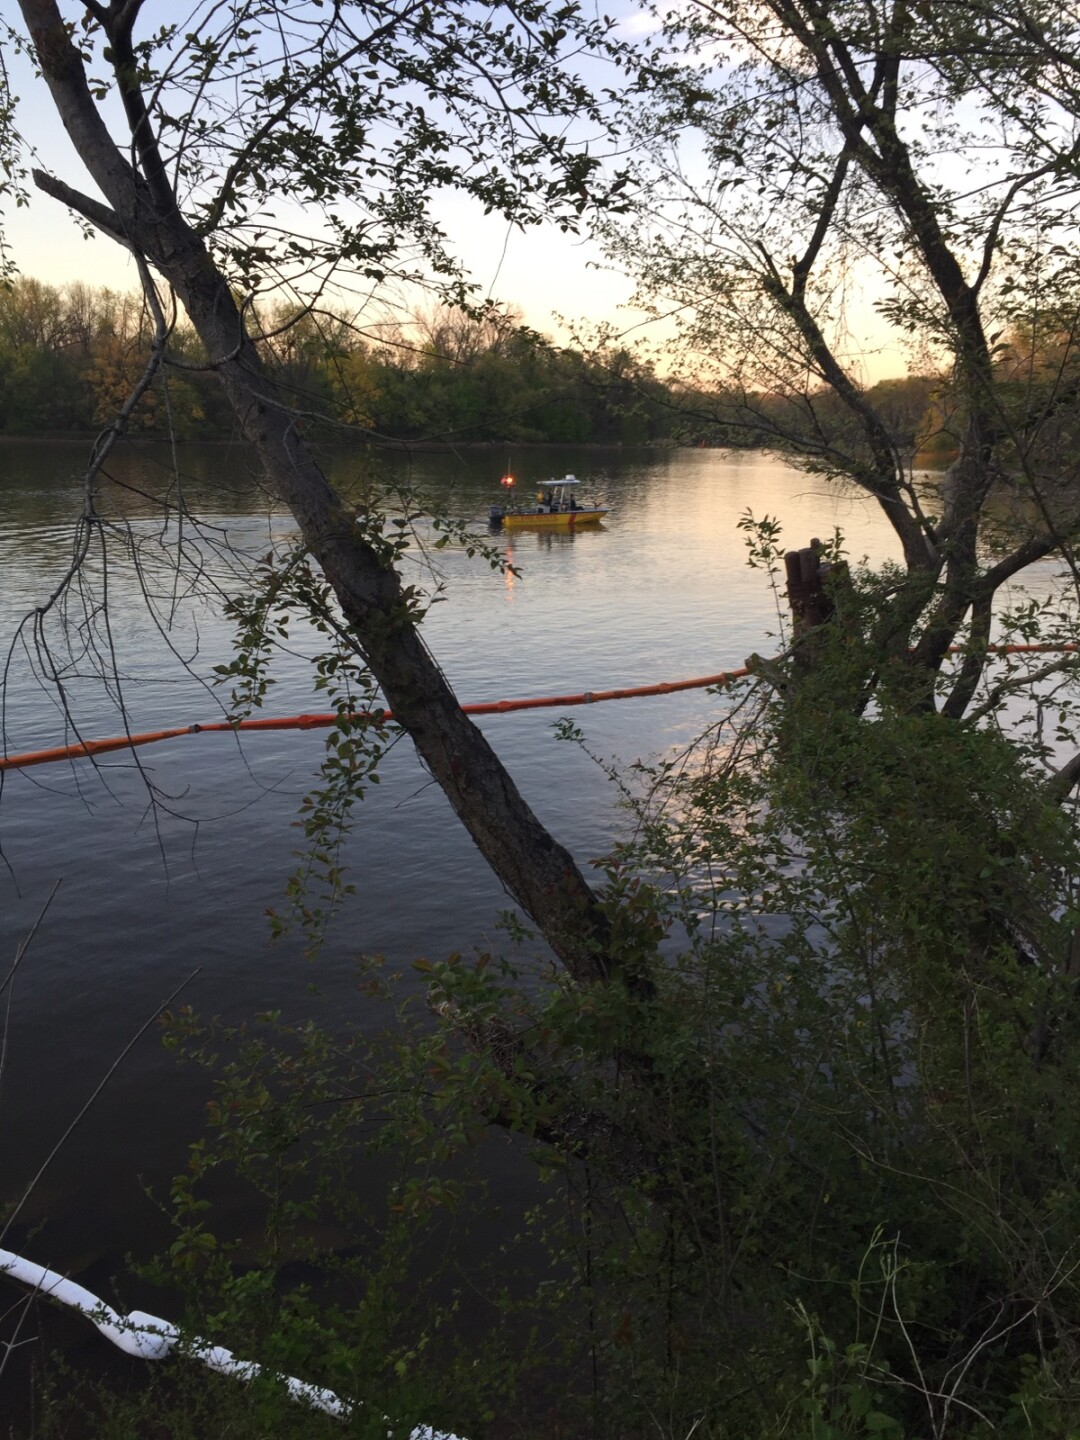 Photos: Oil slick on James River closes Dutch Gap boat landing